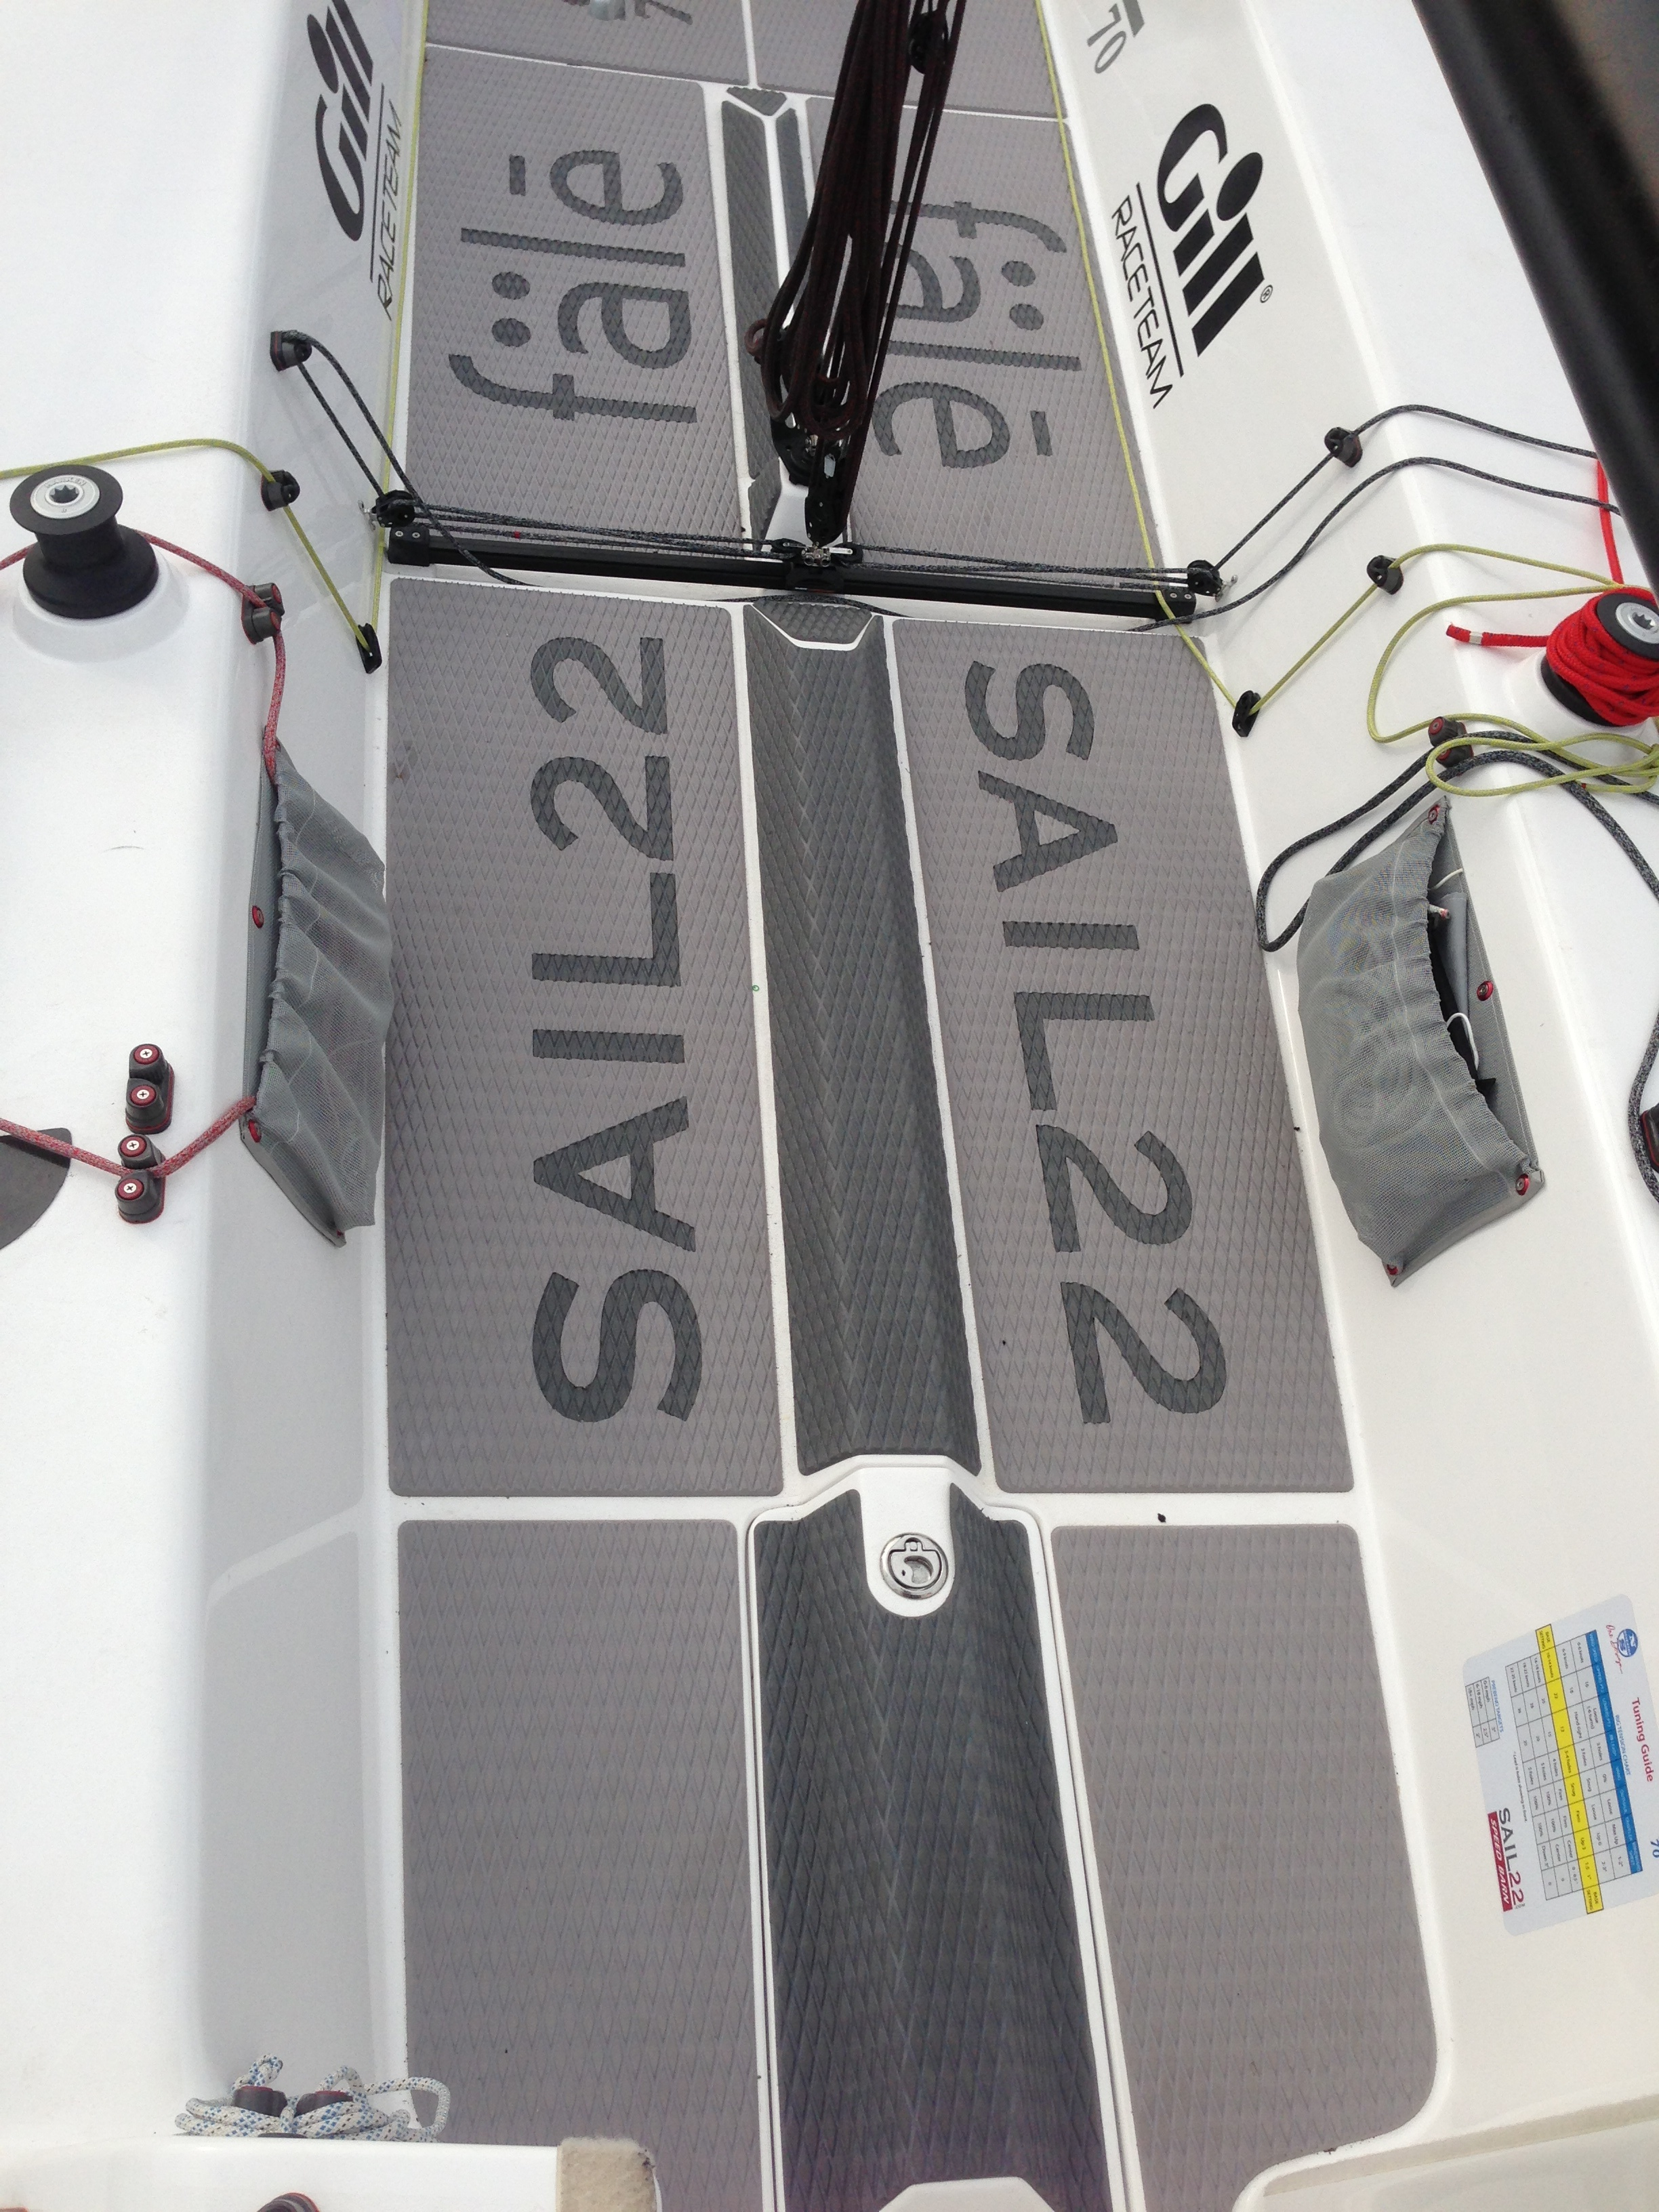 Sail22 J/70 Soft Deck Kit